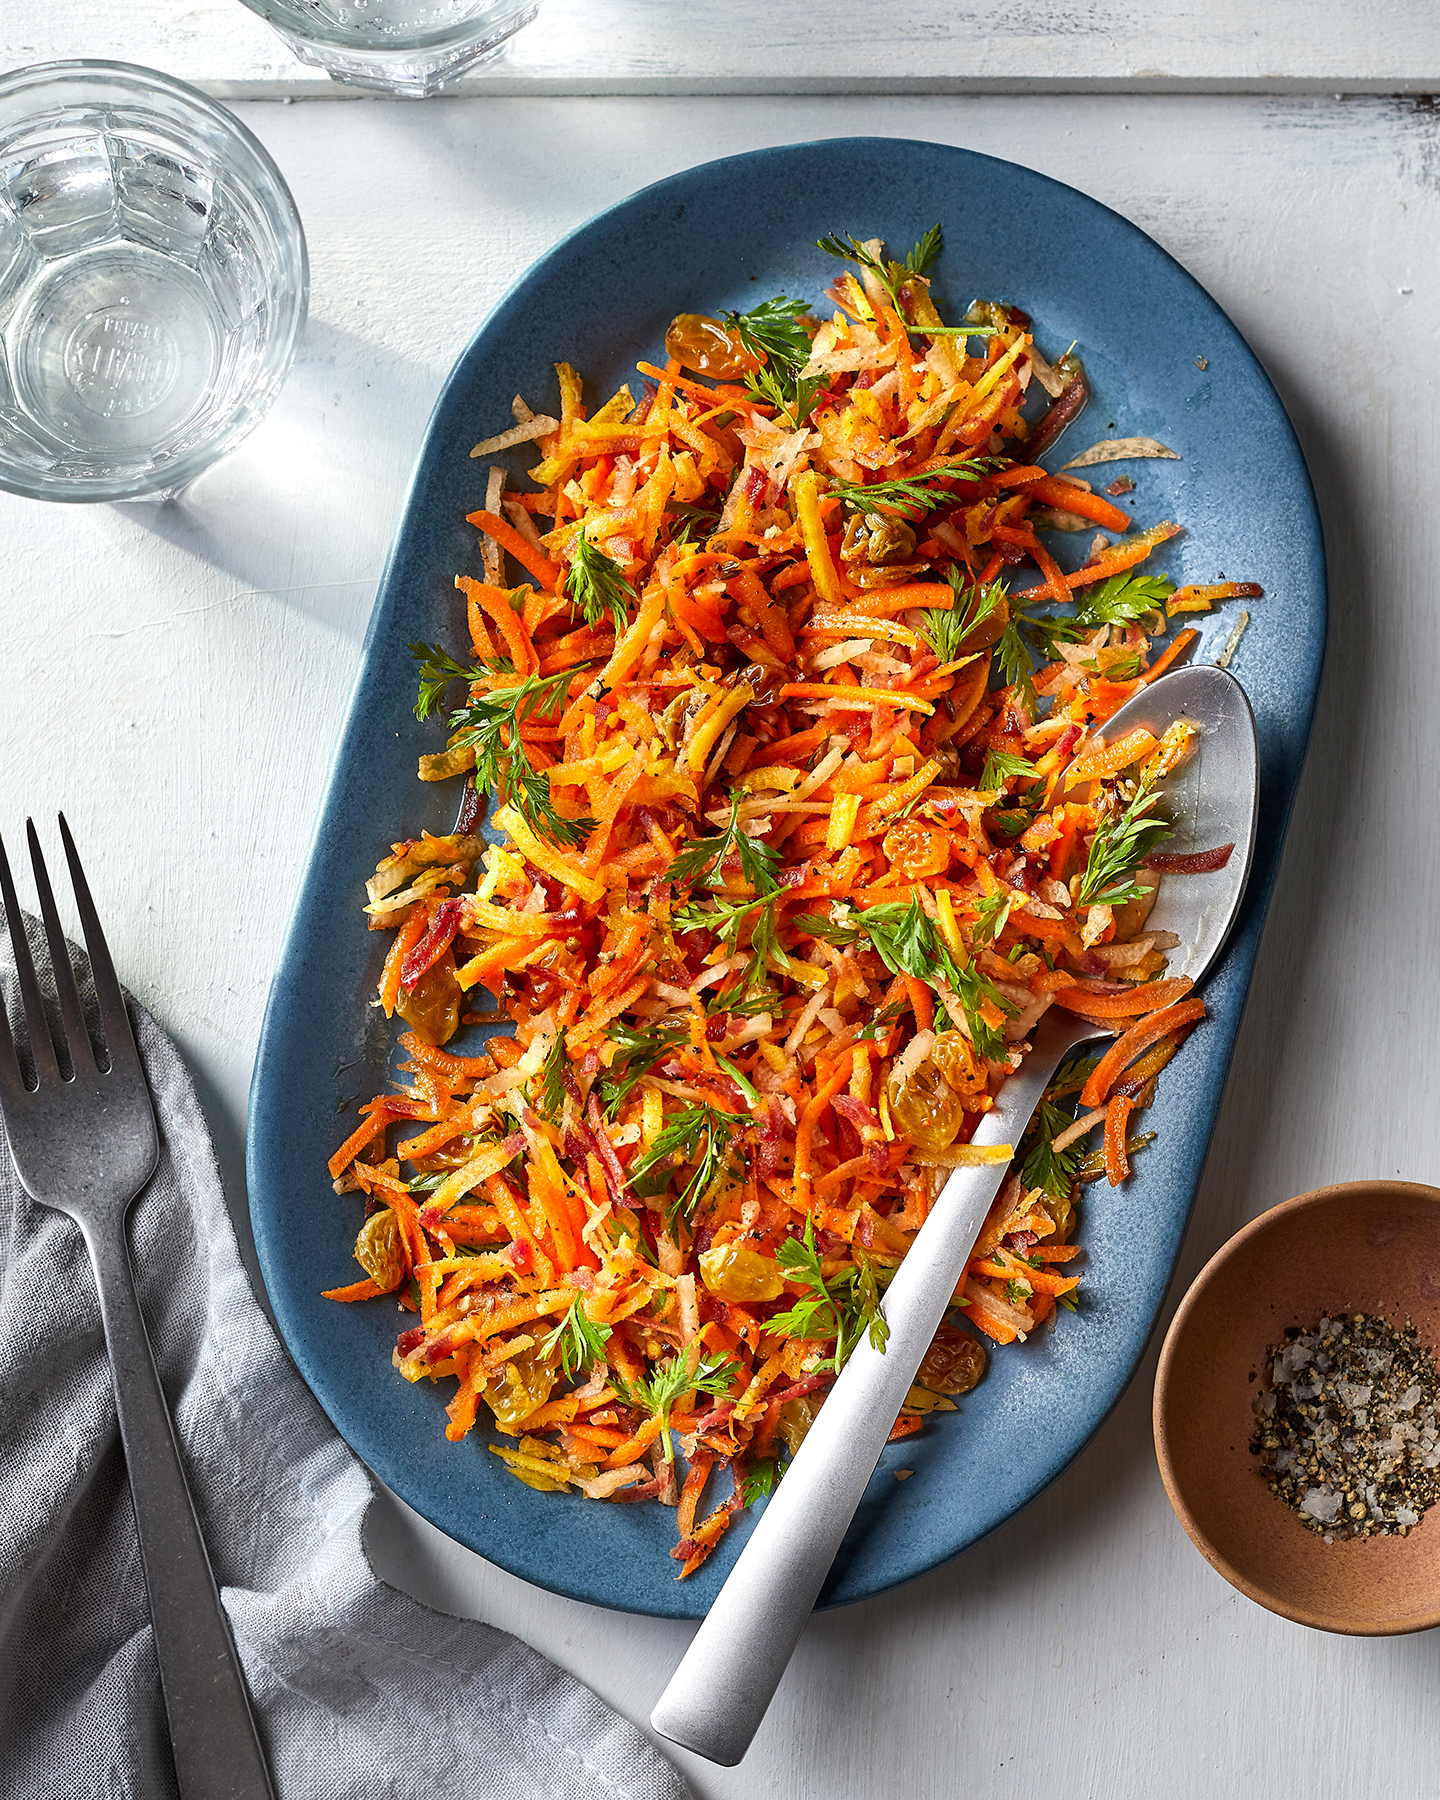 Healthy Superbowl Recipes: Spiced Carrot Salad